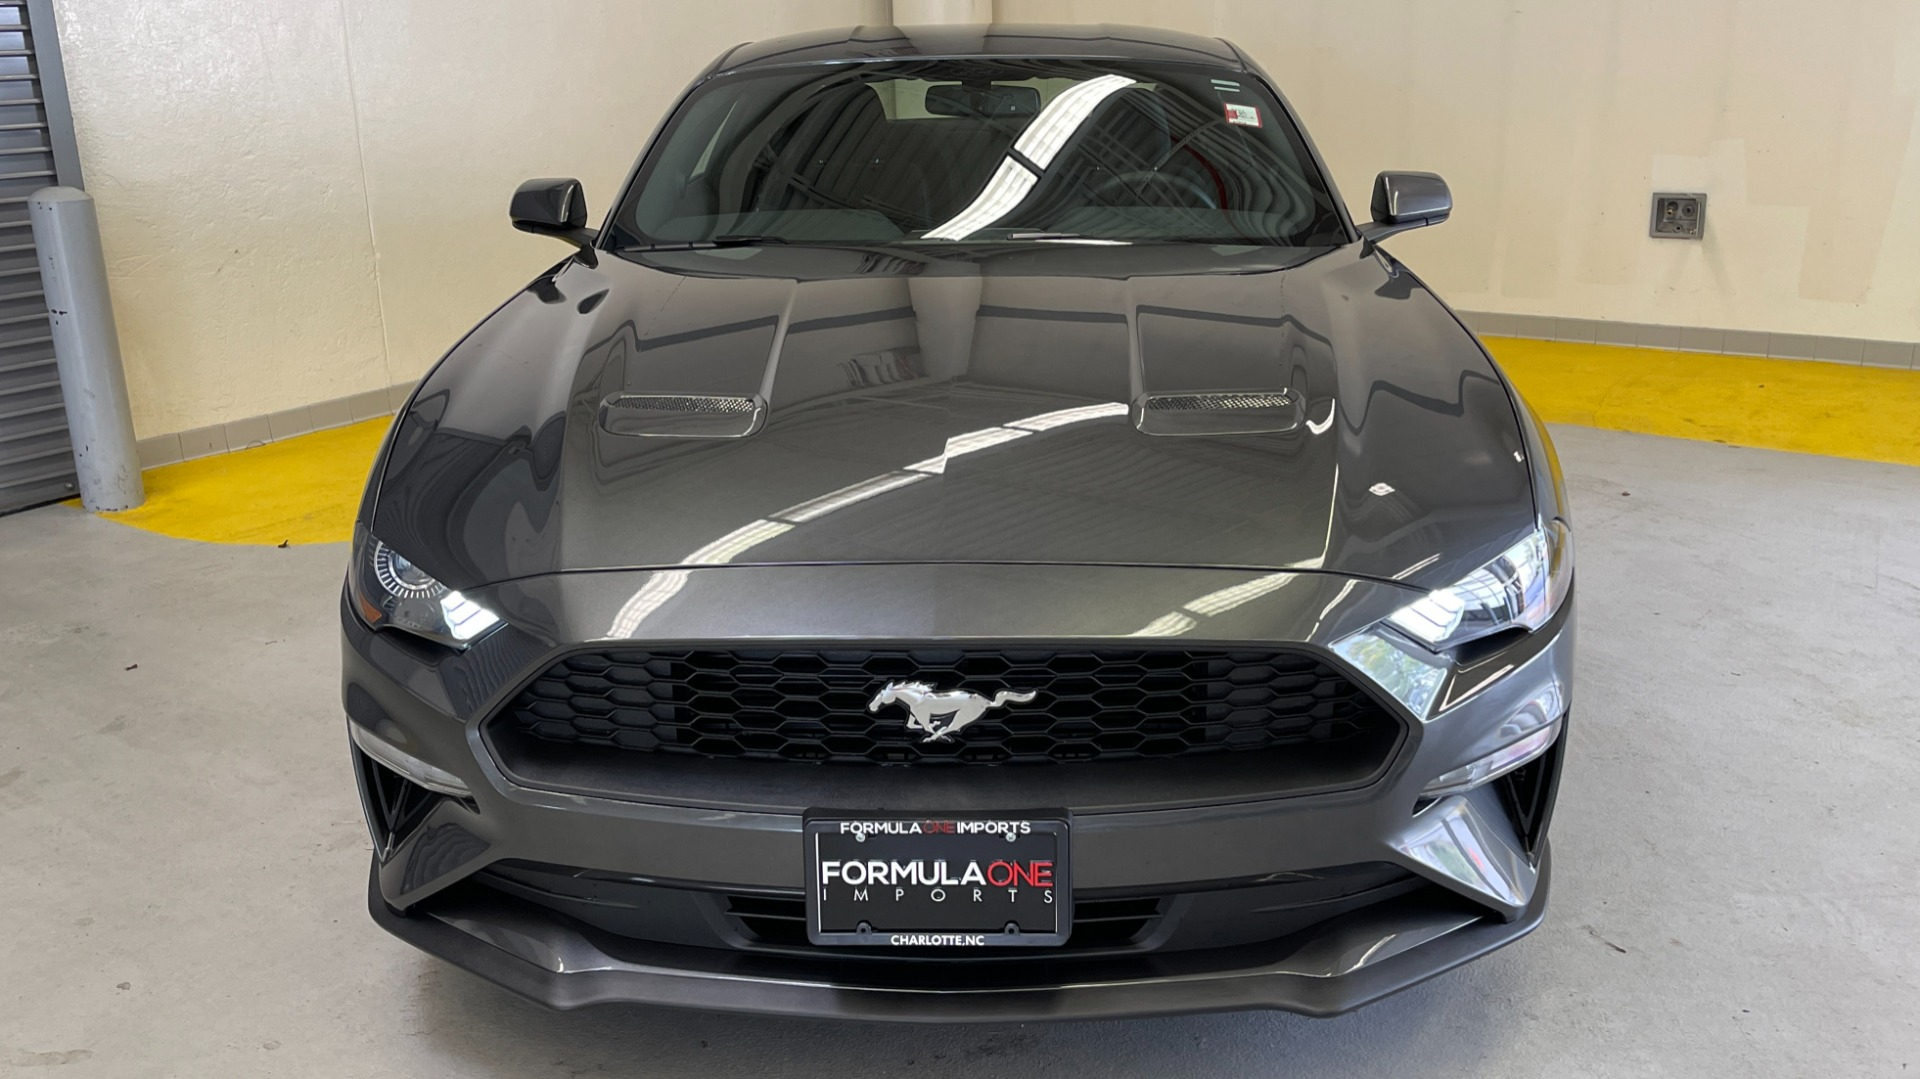 Used 2019 Ford MUSTANG ECOBOOST 2.3L / 10-SPD AUTO / SYNC3 8INCH SCREEN / TRACK APPS / REARVIEW for sale $31,795 at Formula Imports in Charlotte NC 28227 12